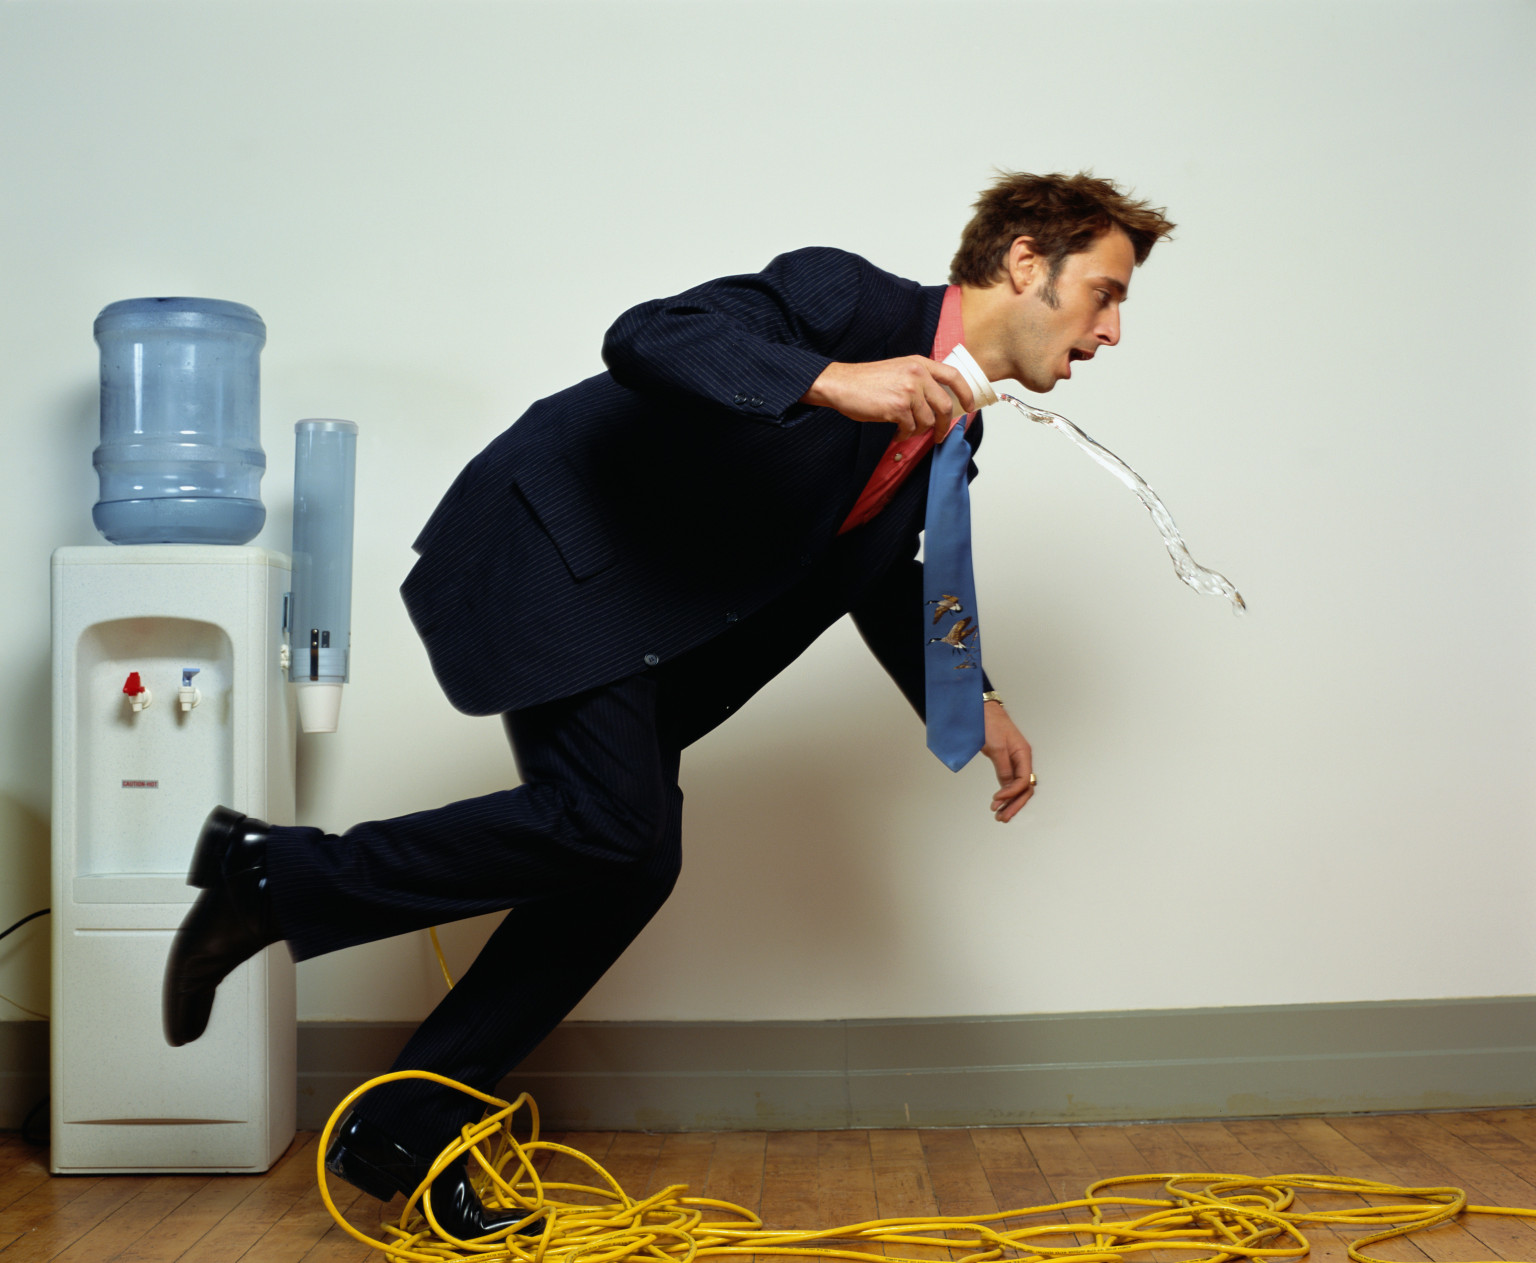 How to Prevent People from Tripping over Cords, Wires and Cables